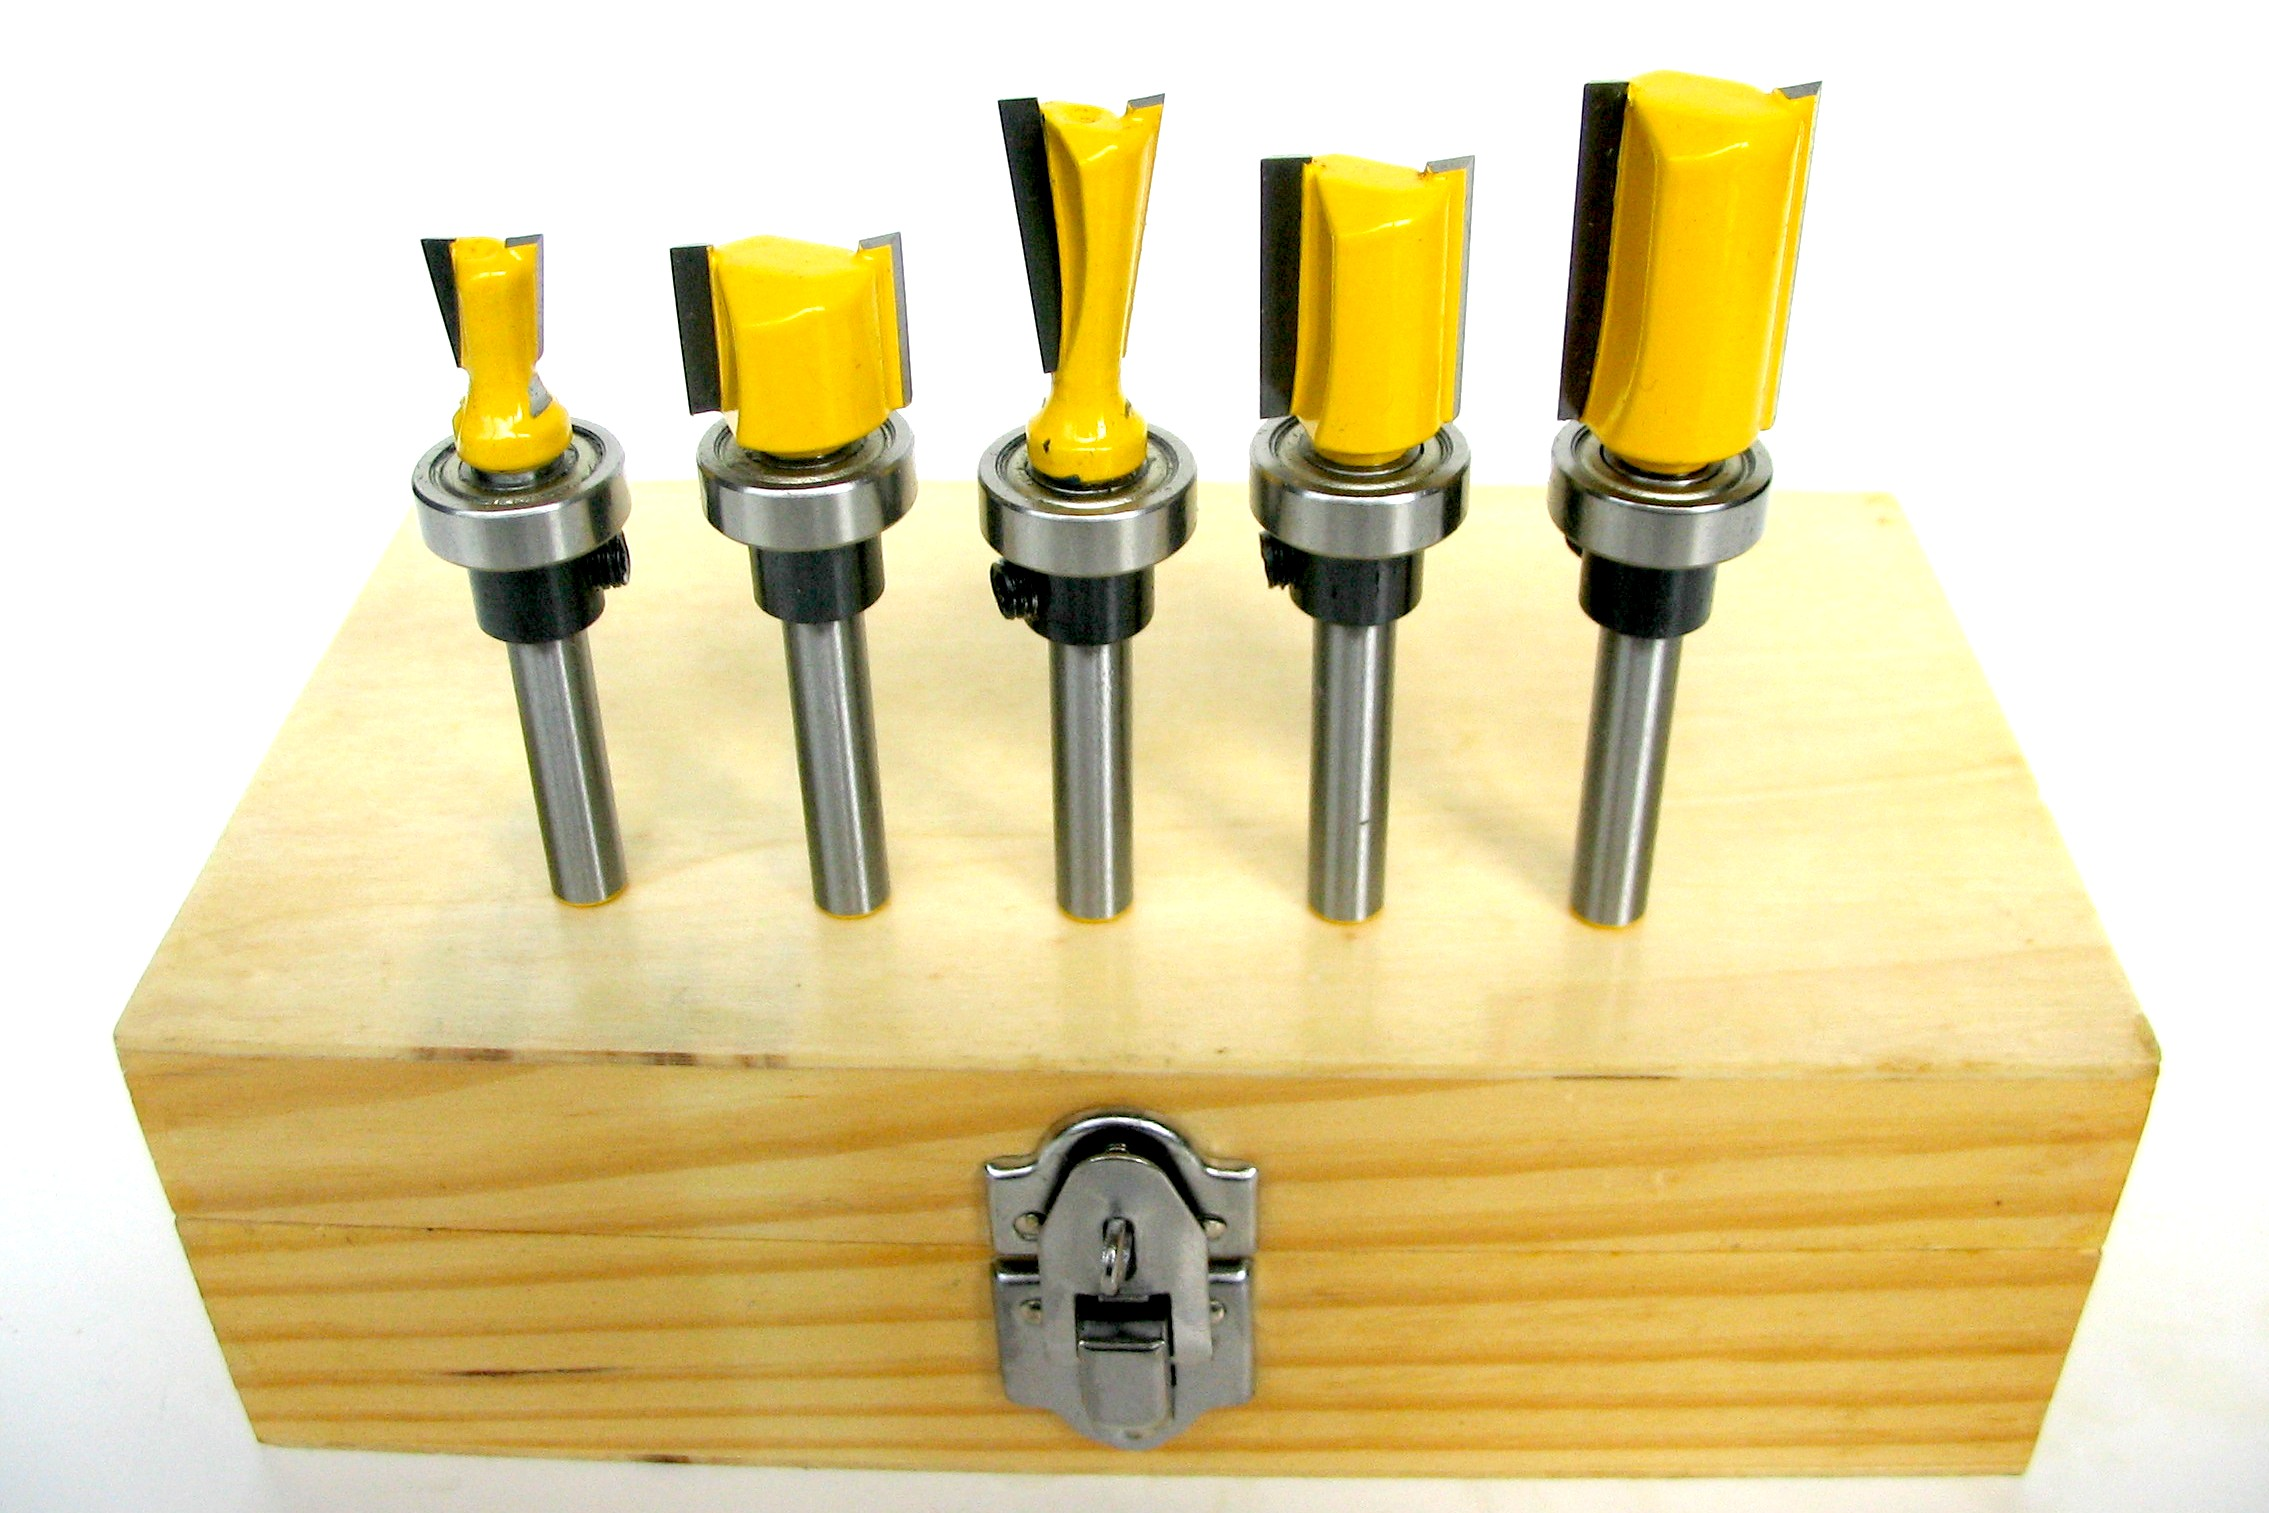 Keller Dovetail Jig Router Bits - Router Image Oakwoodclub.Org